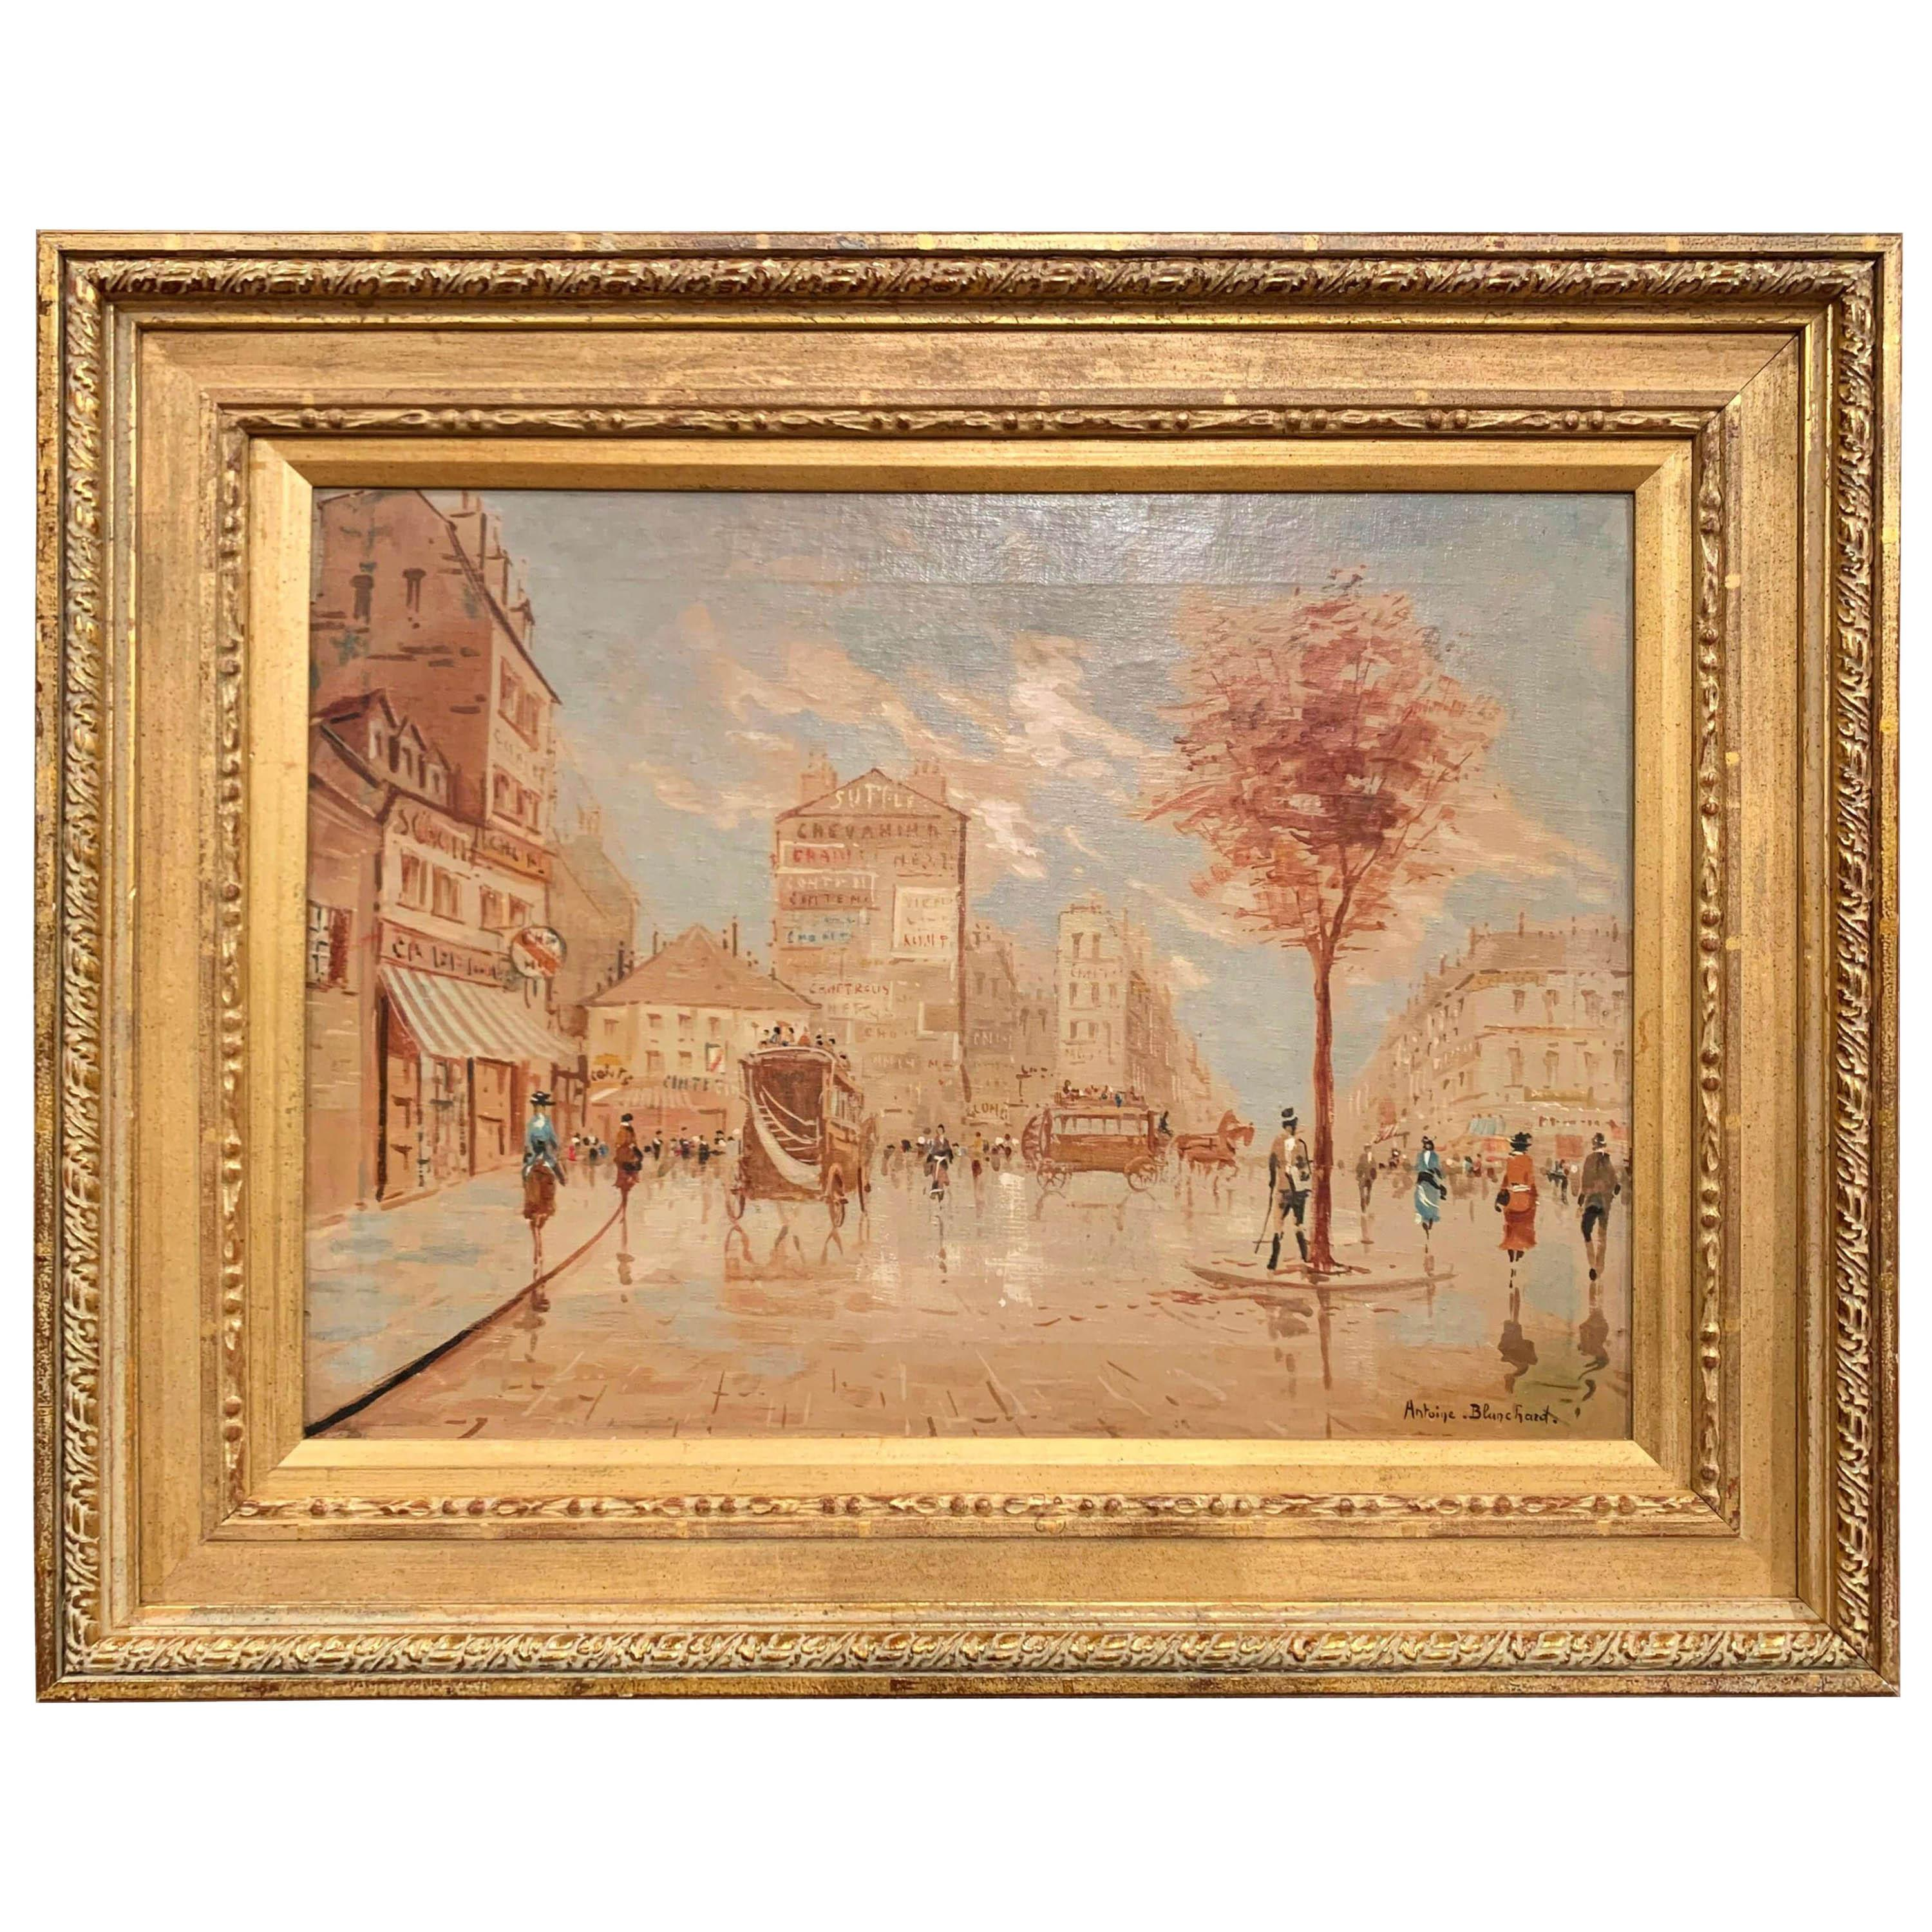 Midcentury French Parisian Scene Oil Painting in Gilt Frame Signed A. Blanchard